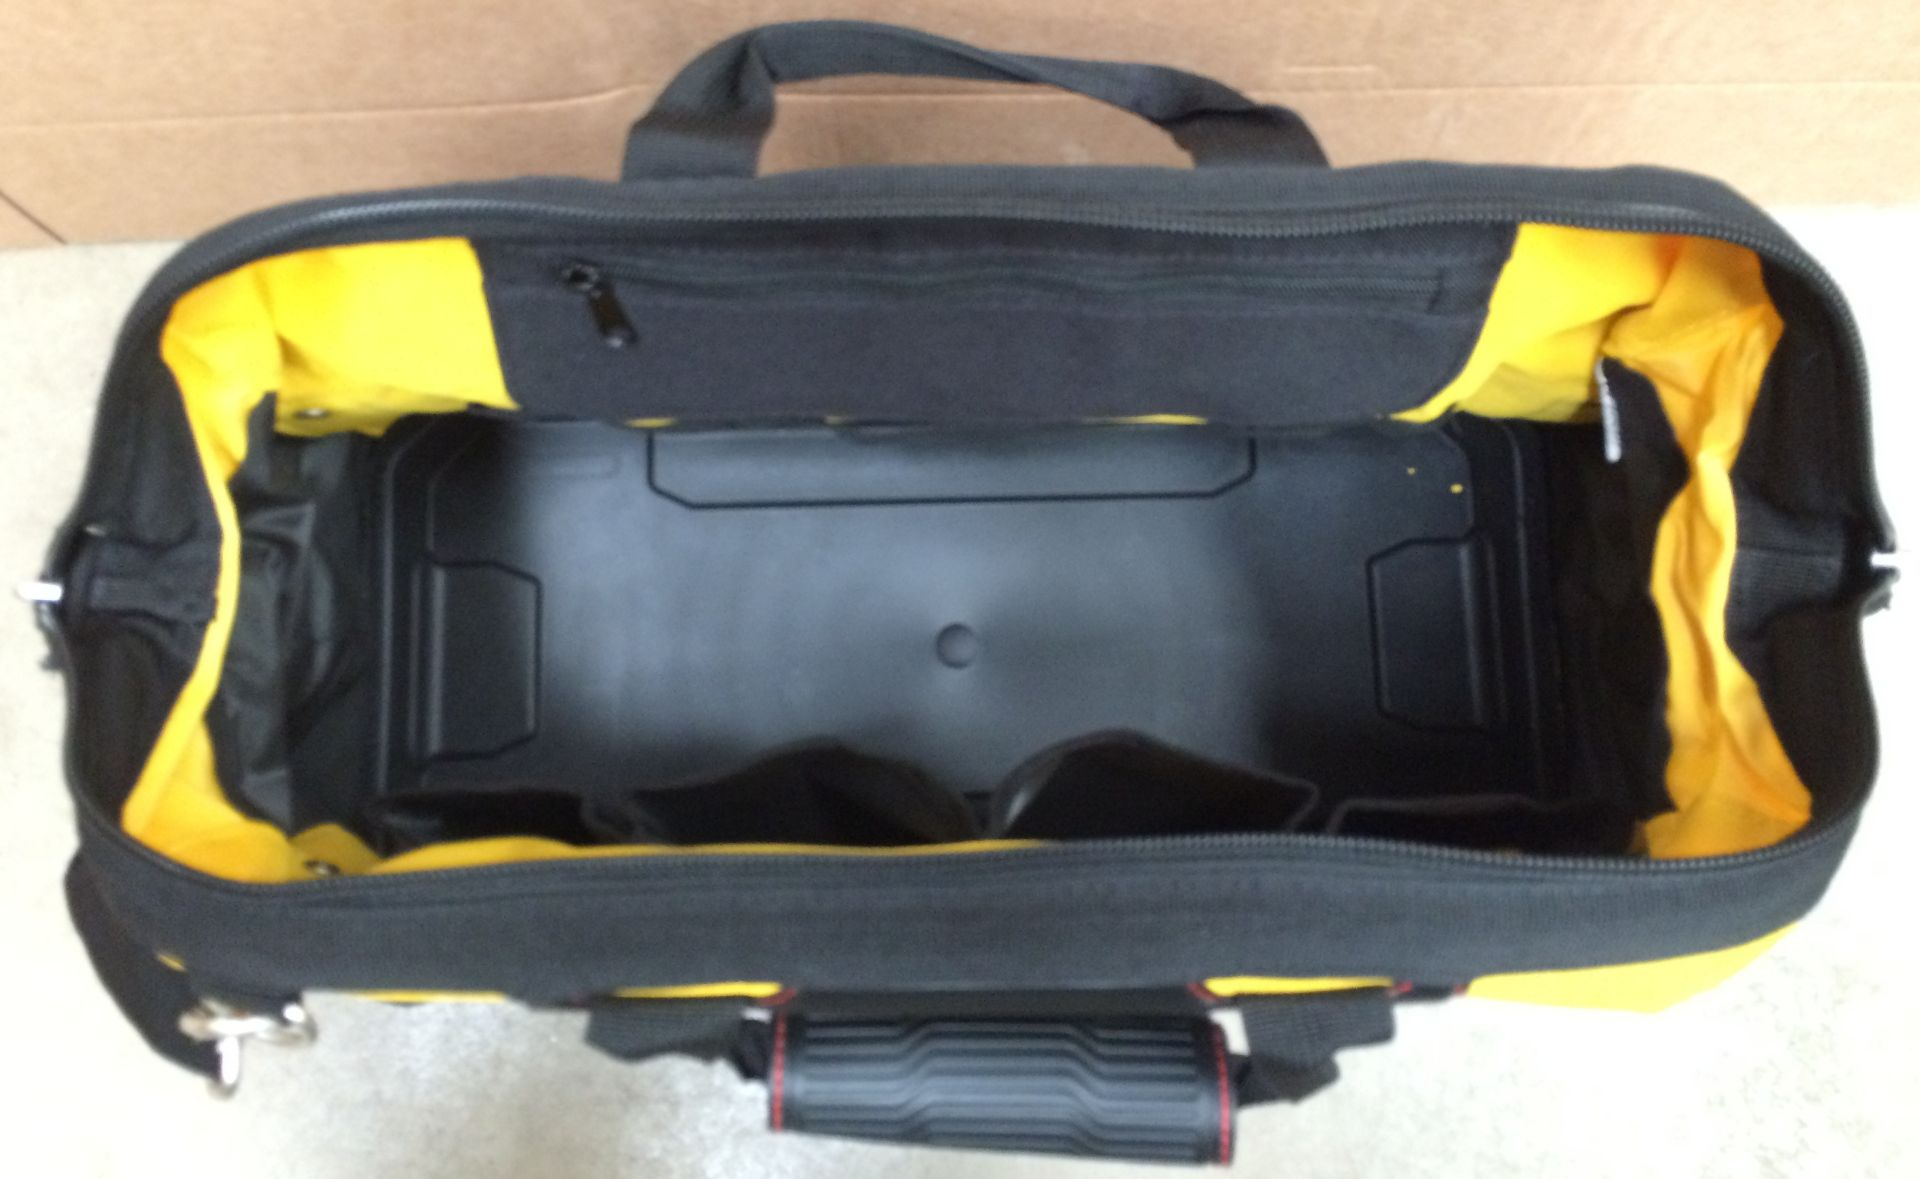 Stanley Fatmax multi section tool bag - 46 x 23 x 28cm - Image 2 of 2